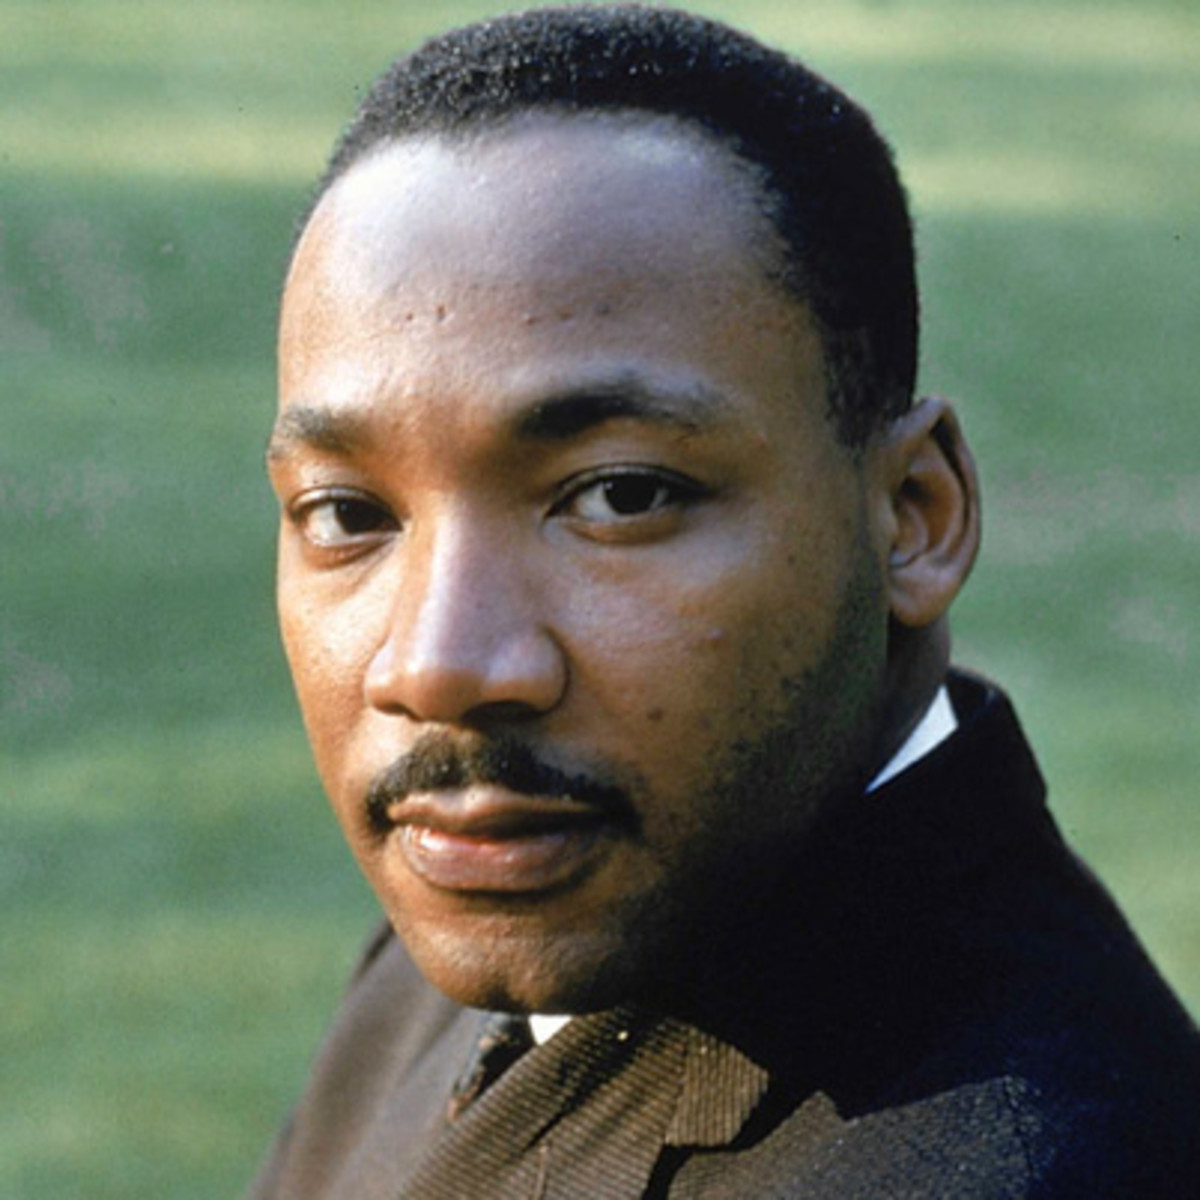 martin luther king jr civil rights activist minister martin luther king jr civil rights activist minister com